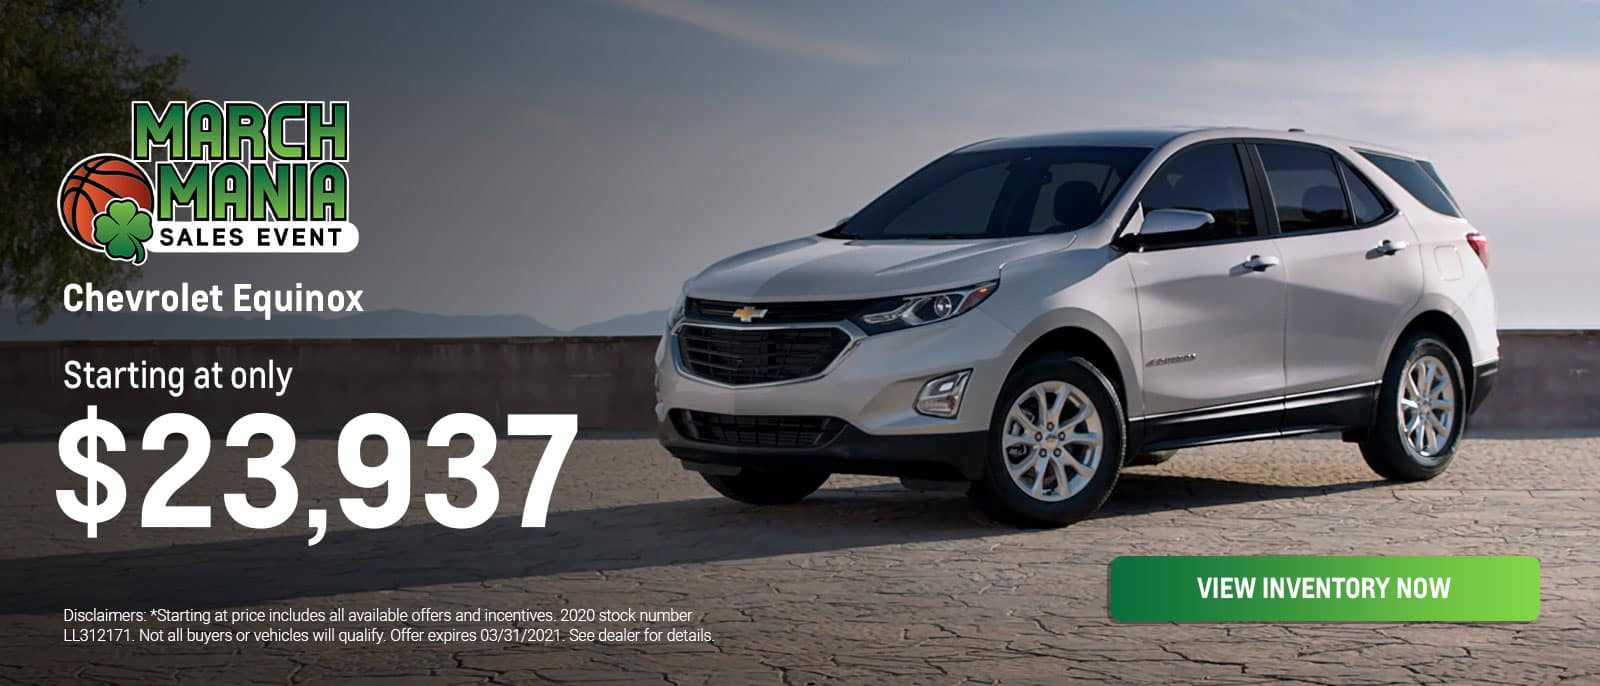 chevrolet-equinox-automall